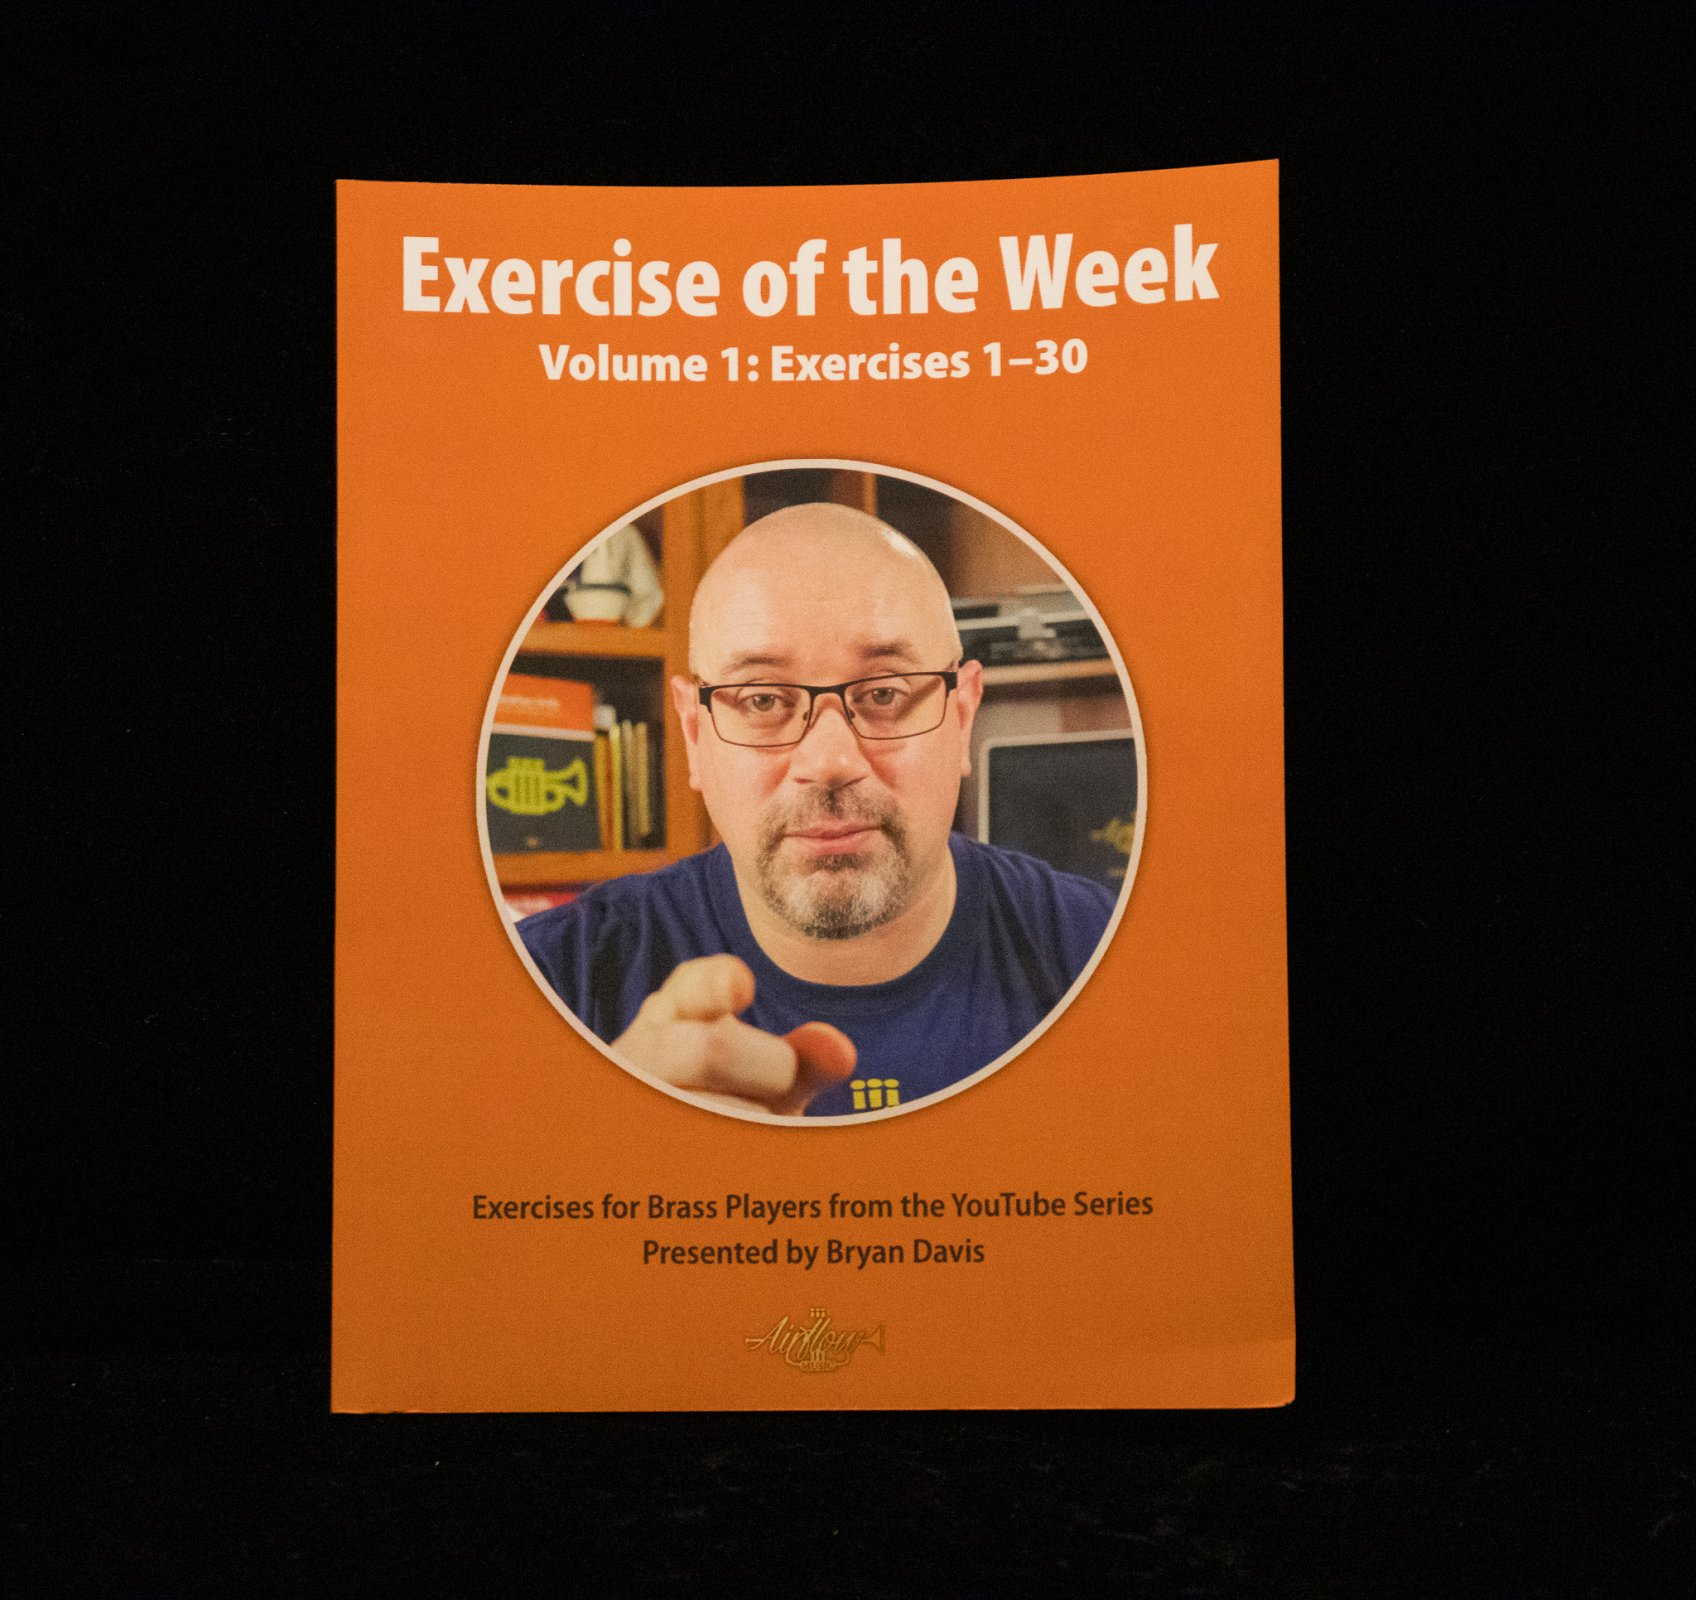 Exercise of the Week Volume 1: Exercises 1-30 by Bryan Davis